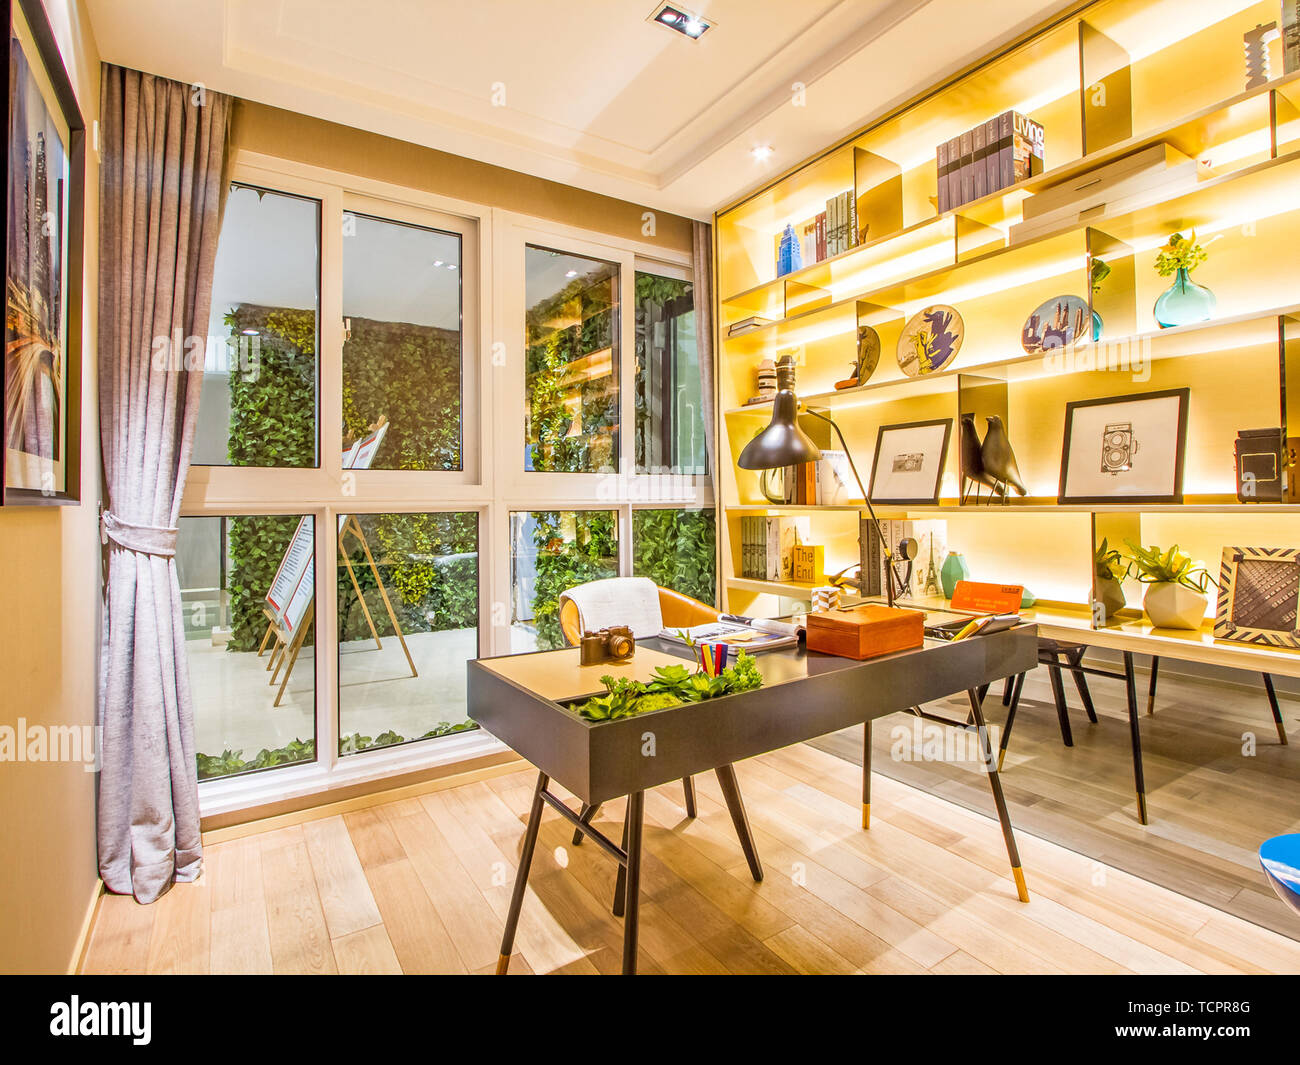 Study Bedroom Interior Interior Design Decoration Luxury Background Interior Decoration Glass Desk Calligraphy Computer Desk Office Office Space Sitting Area Lounge Room Environment Reading Reading Newspapers Stock Photo Alamy